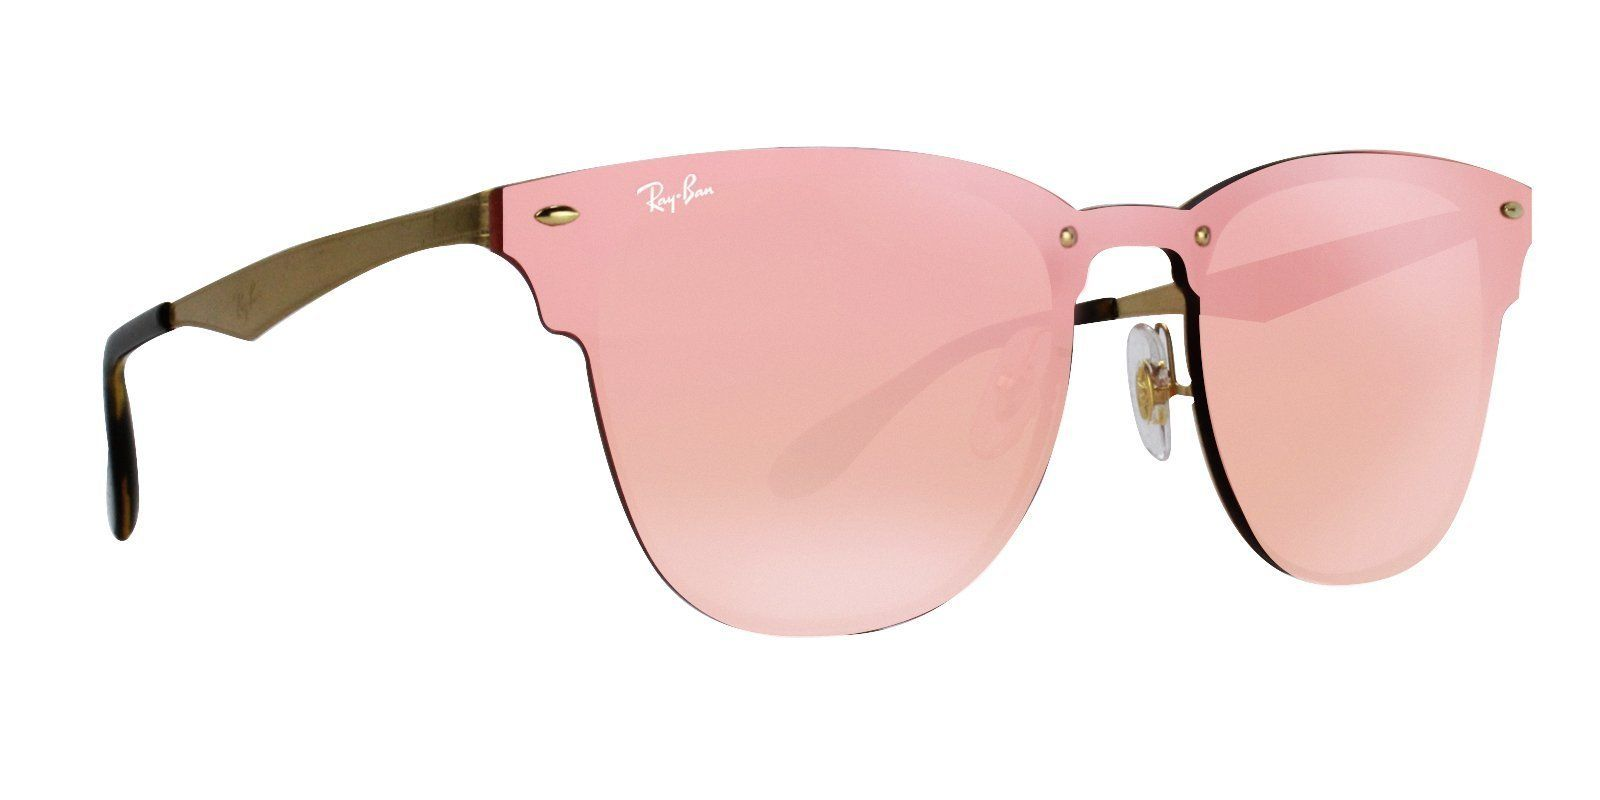 00420787e4 Ray Ban - RB3576N Gold - Pink sunglasses in 2018